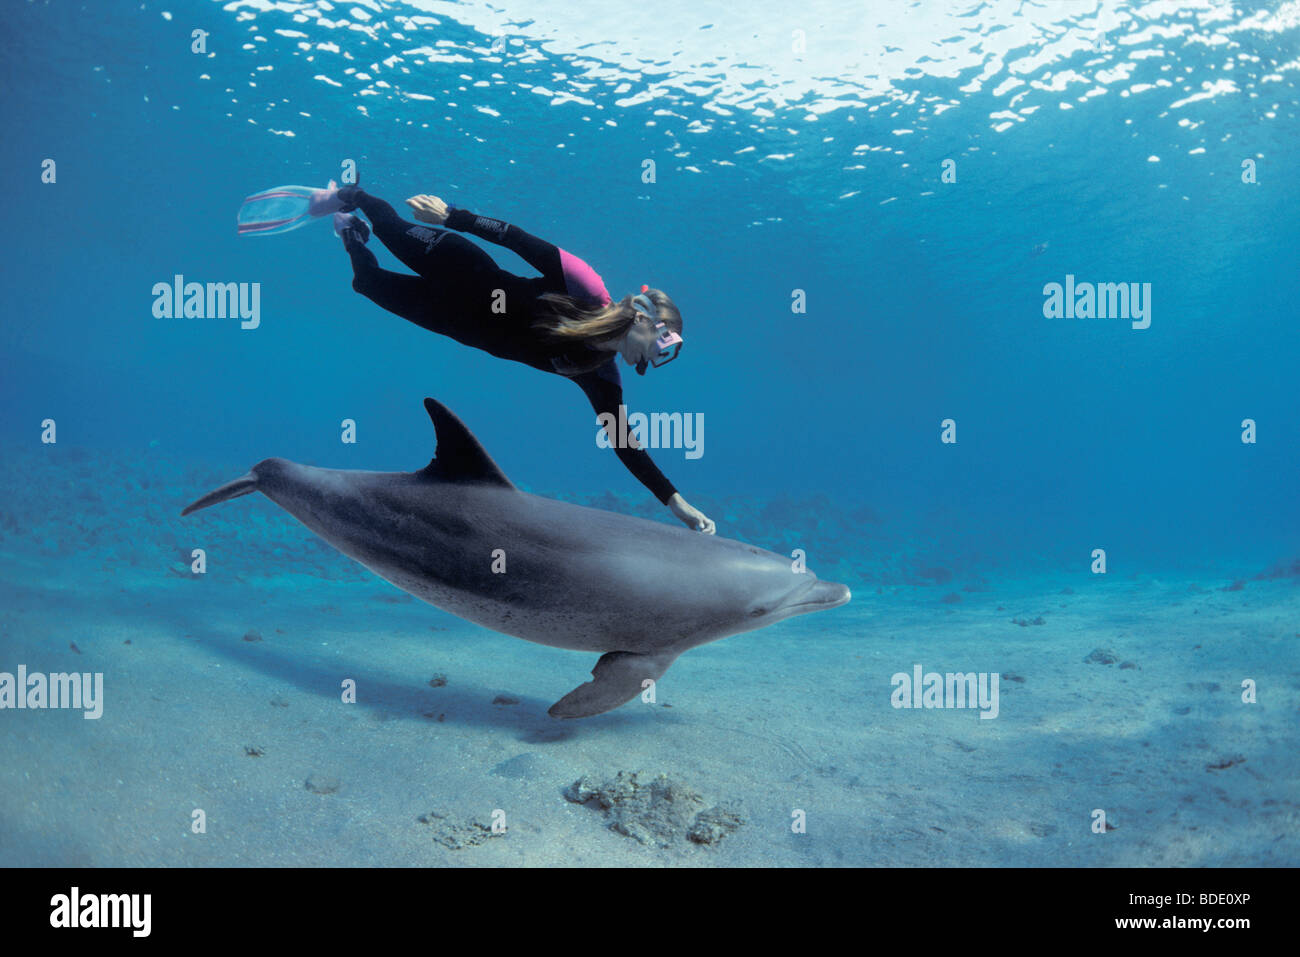 Snorkeler swimming with Bottlenose Dolphin (Tursiops truncatus), Nuweiba, Egypt - Red Sea. - Stock Image